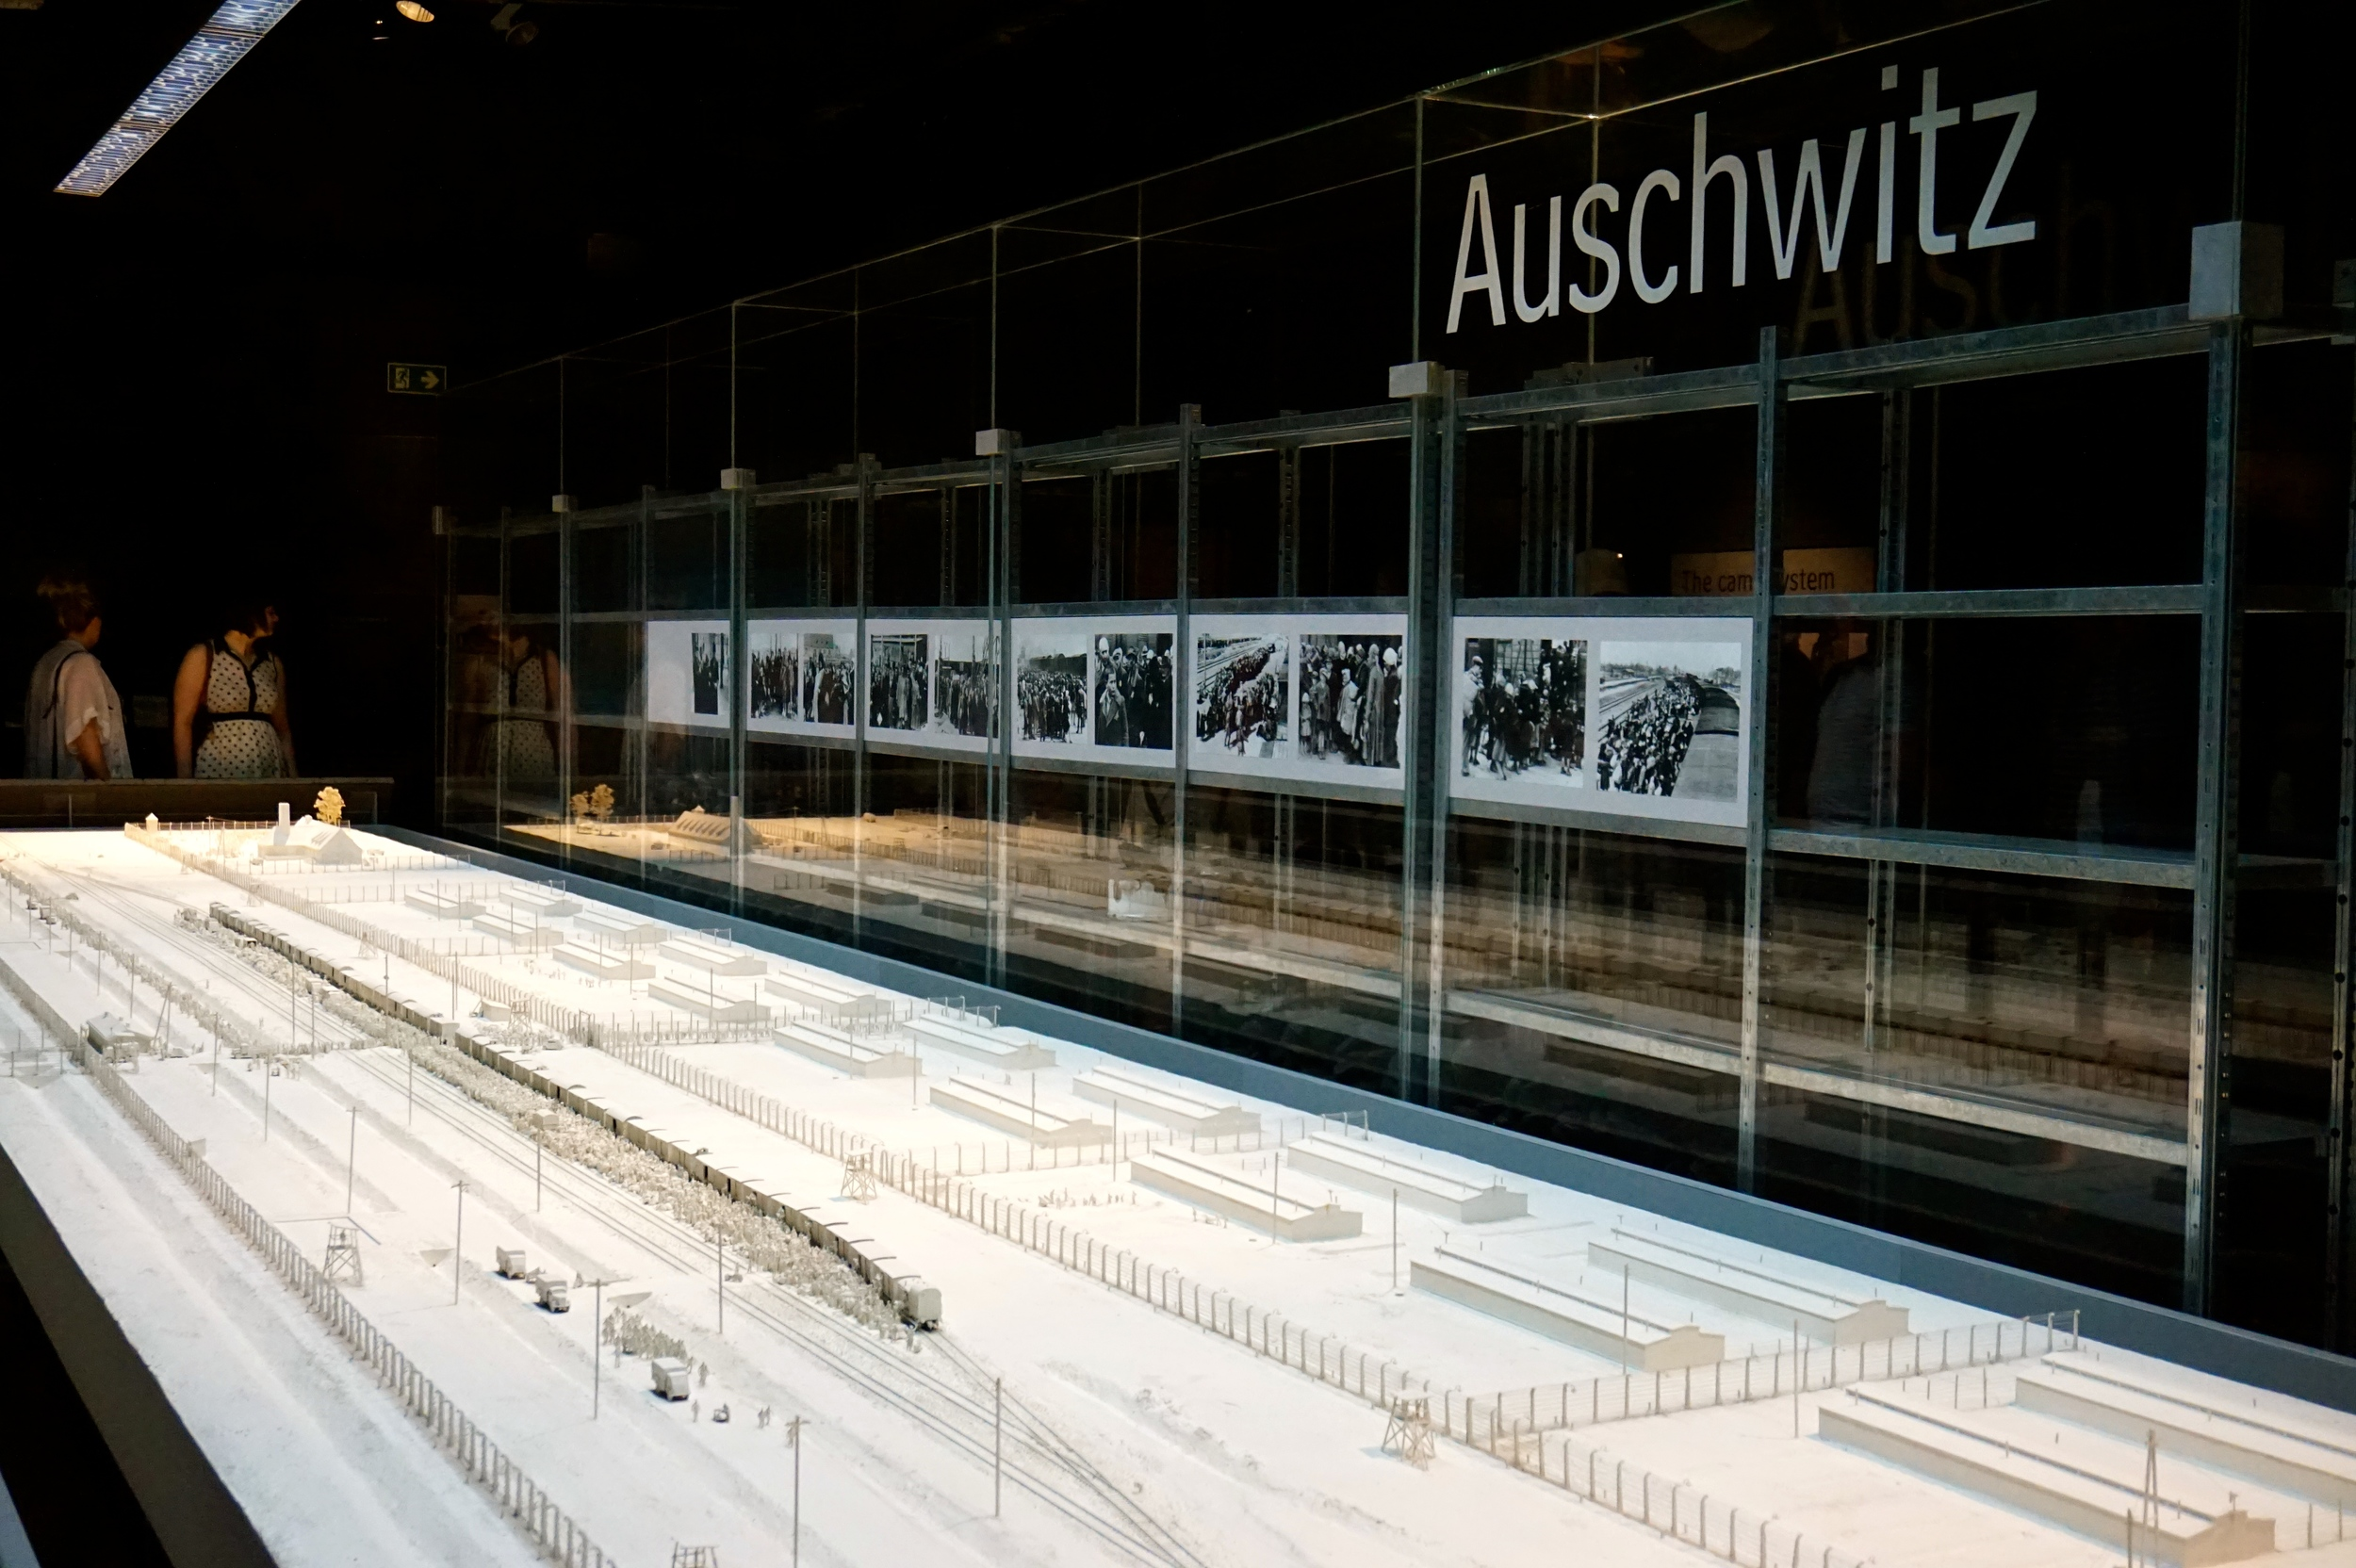 The haunting Holocaust exhibition